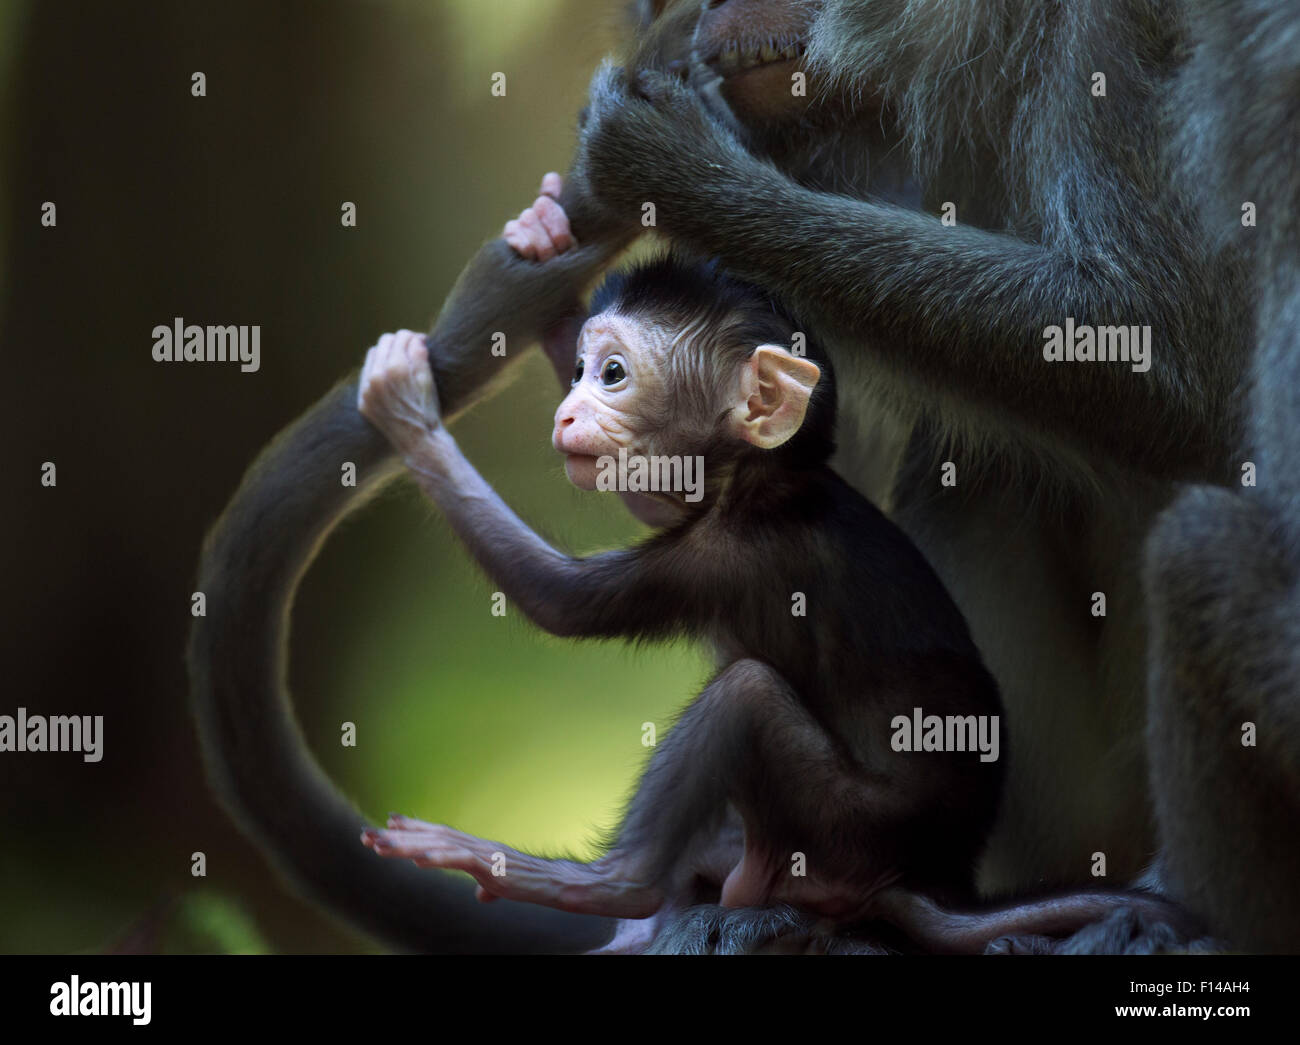 Long-tailed macaque (Macaca fascicularis) baby aged 2-4 weeks holding on to an adult's tail while it is being - Stock Image